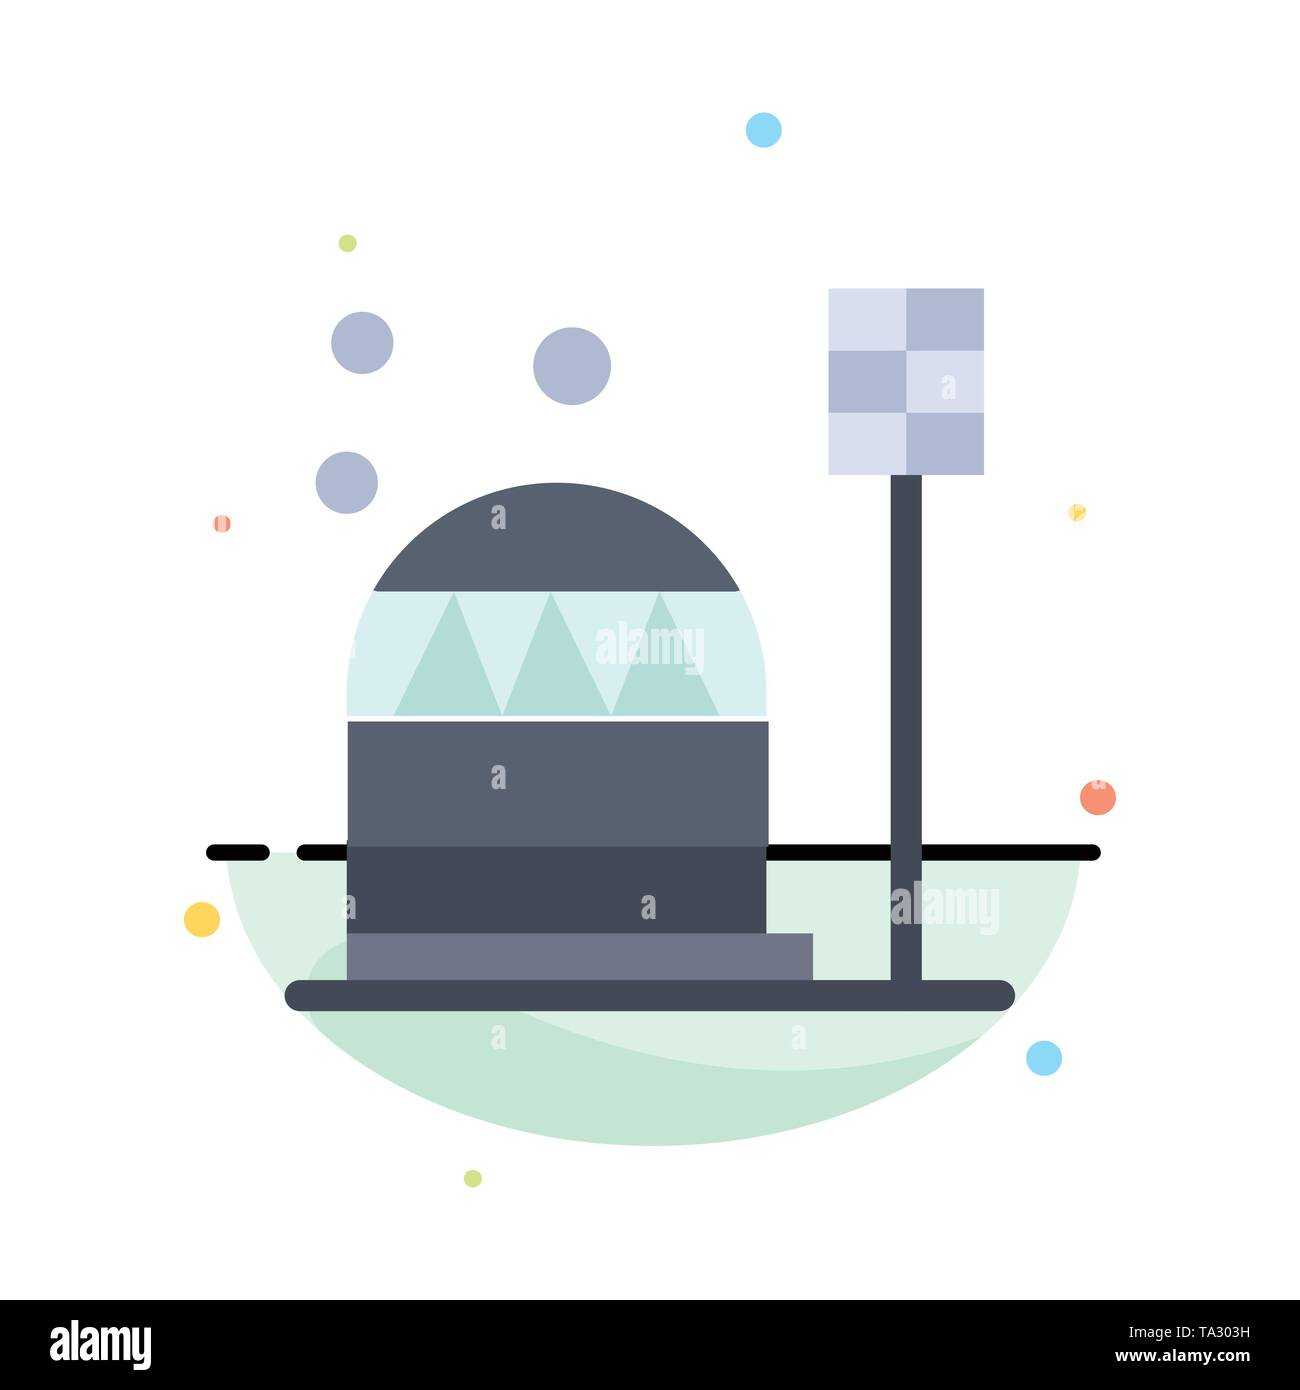 Base, Colony, Construction, Dome, Habitation Abstract Flat Color Icon Template - Stock Image